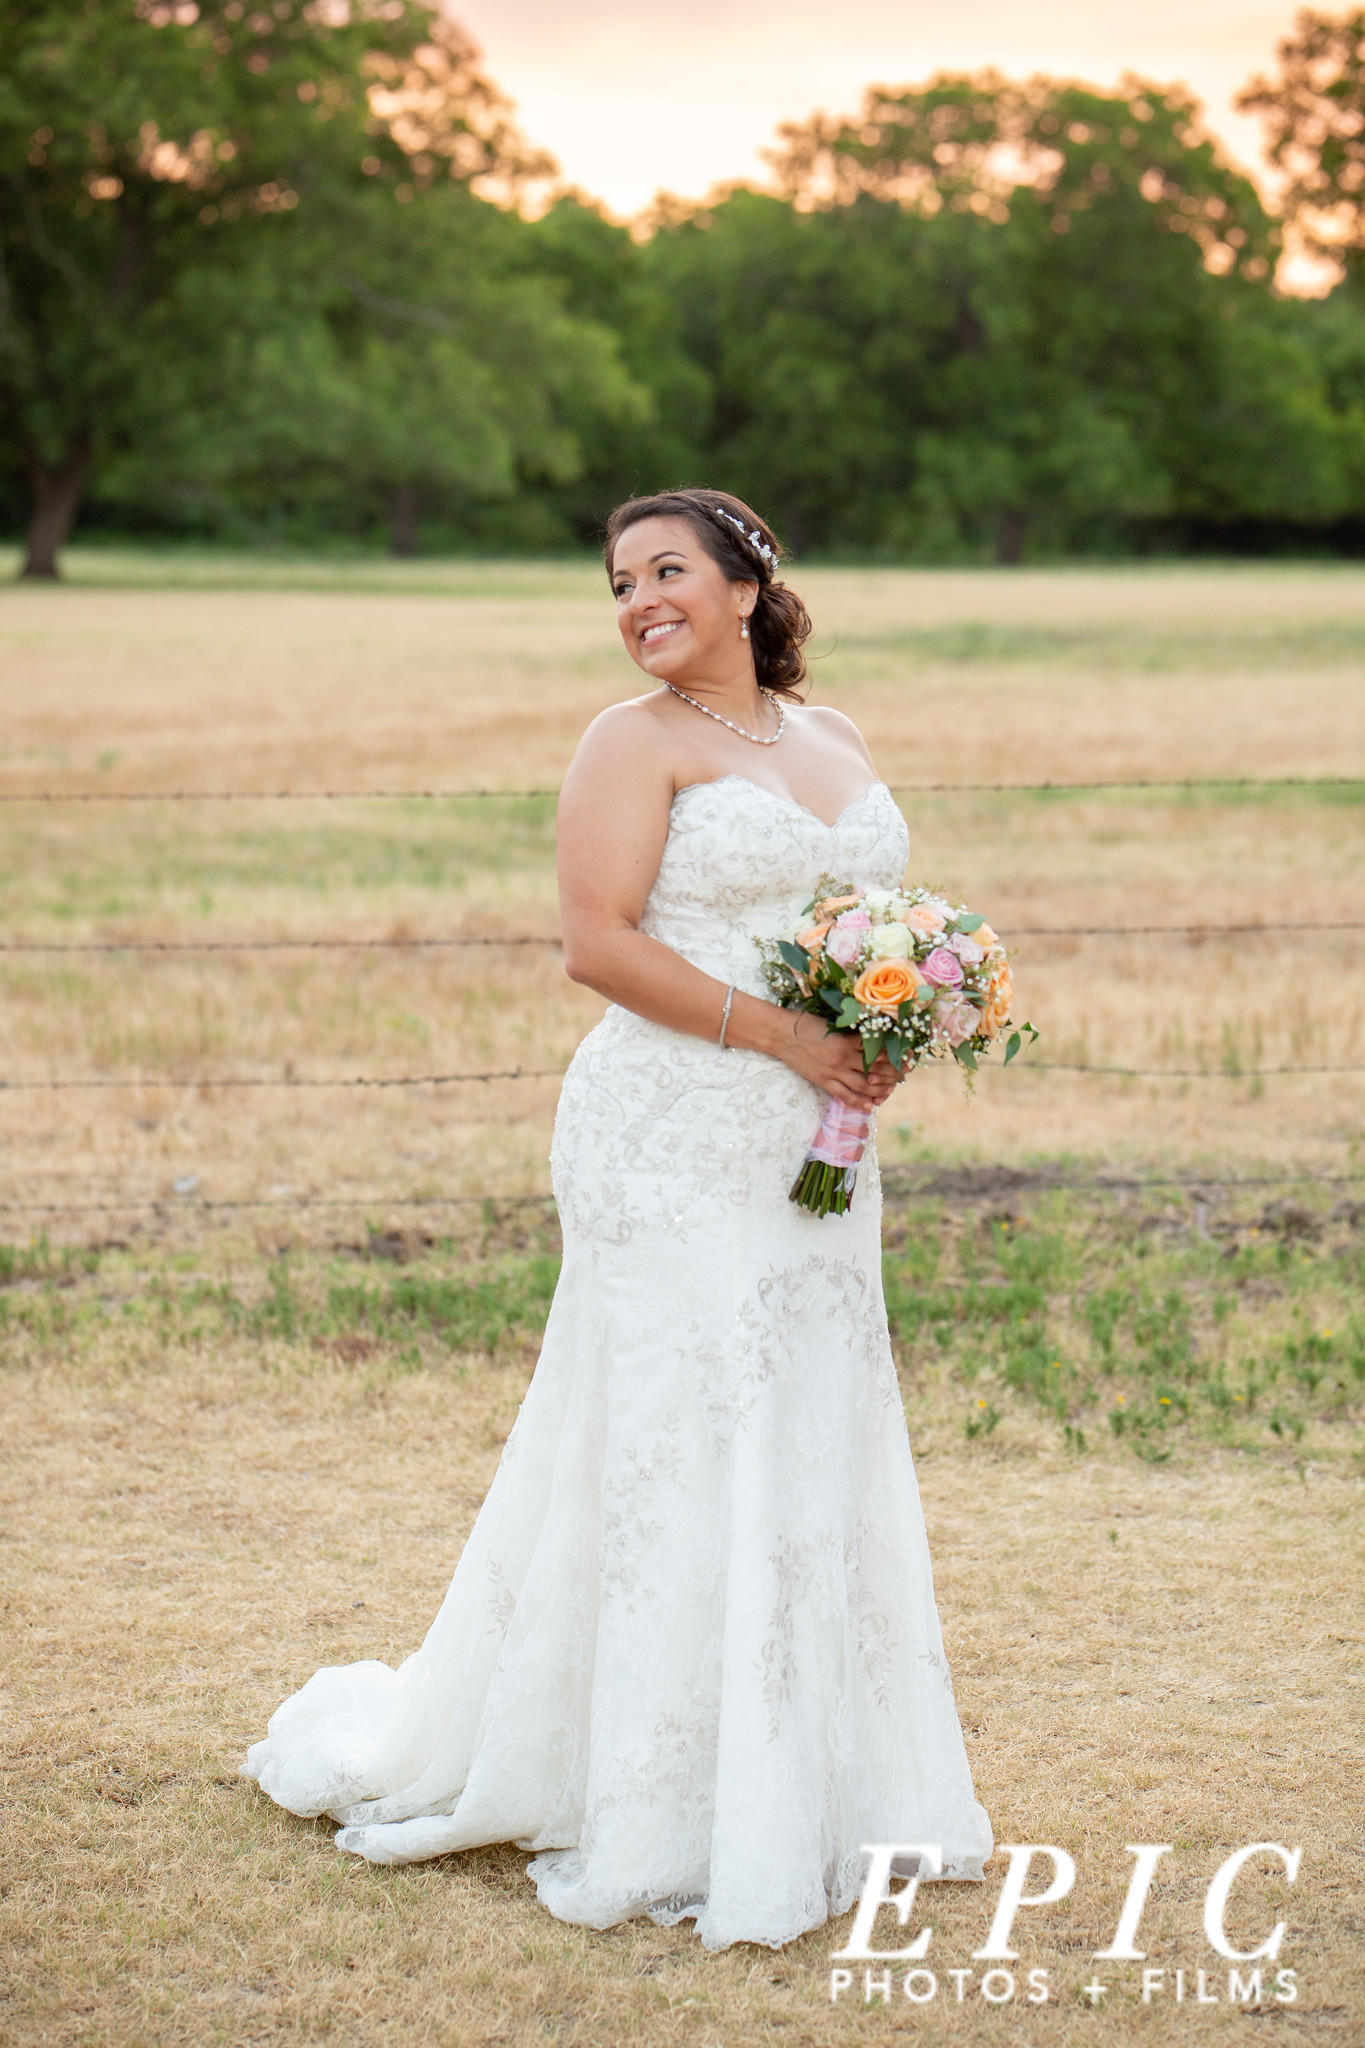 bride smiling behind her as she stands in a field near The Orchard at sundown on her wedding night